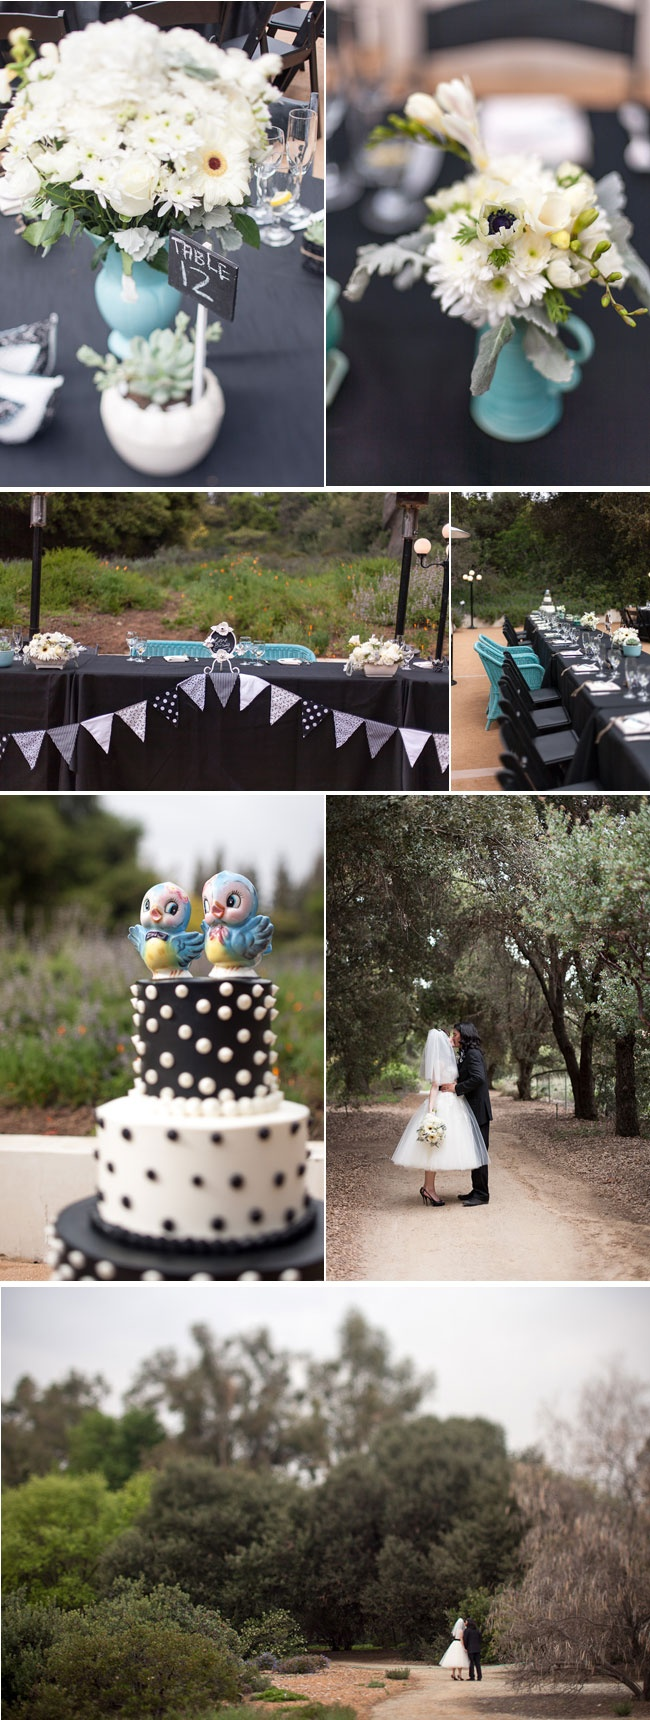 The black tablecloths bring an edge to the theme and stop the vintage from looking [potentially] too girly